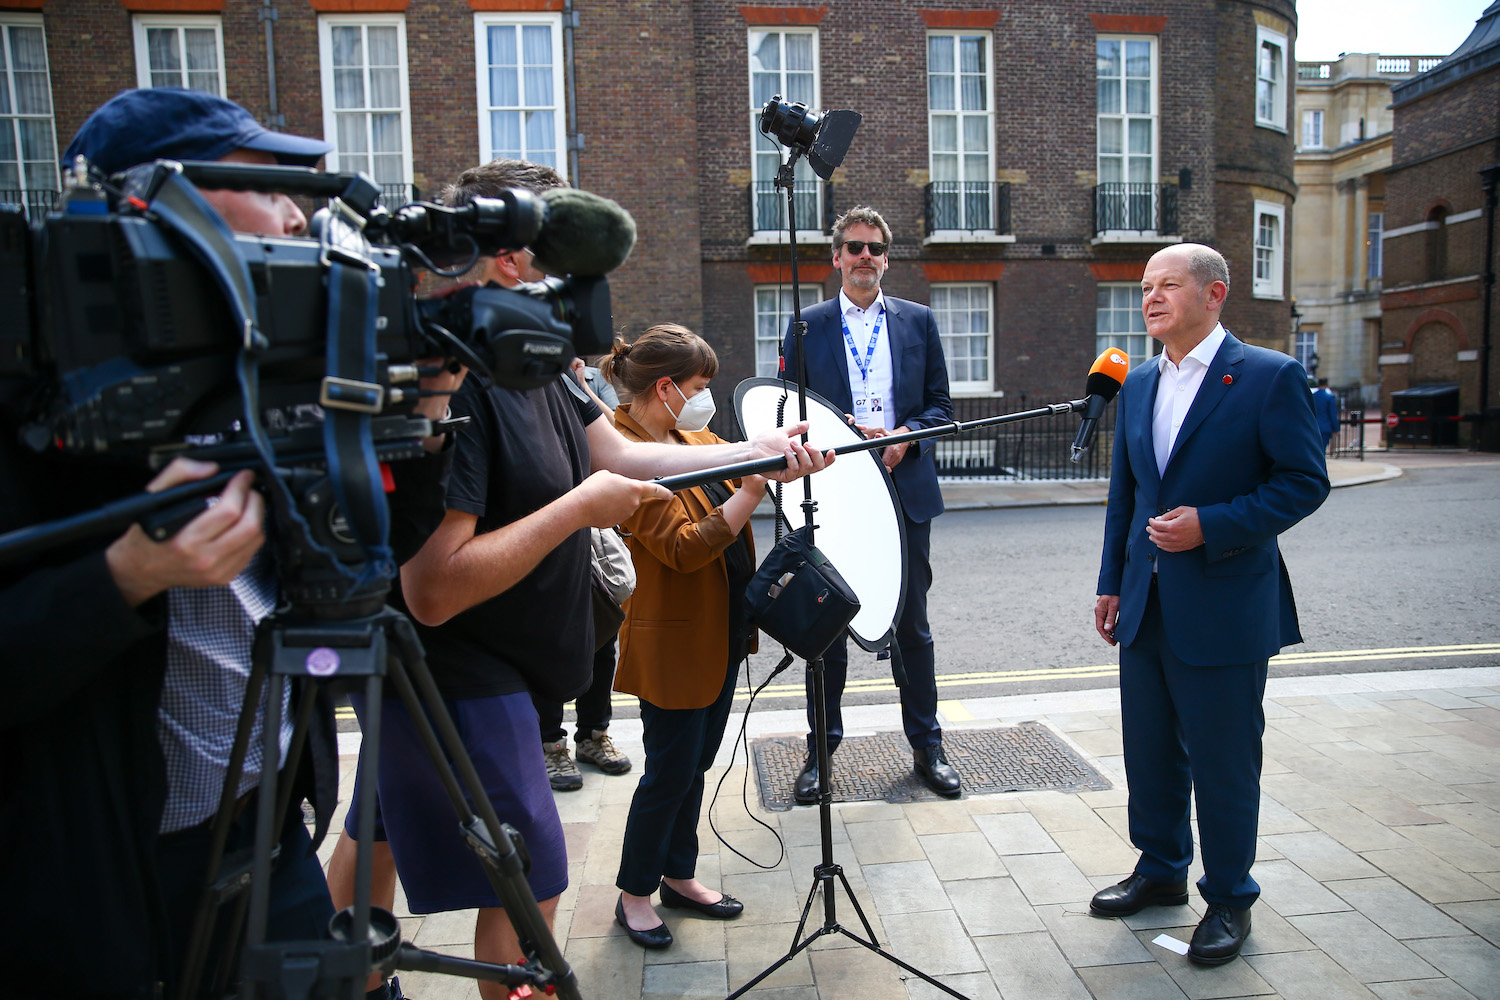 Olaf Scholz, Germany's finance minister, speaks to reporters on the final day of the Group of Seven Finance Ministers' meeting in London on Saturday. (Bloomberg Photo)